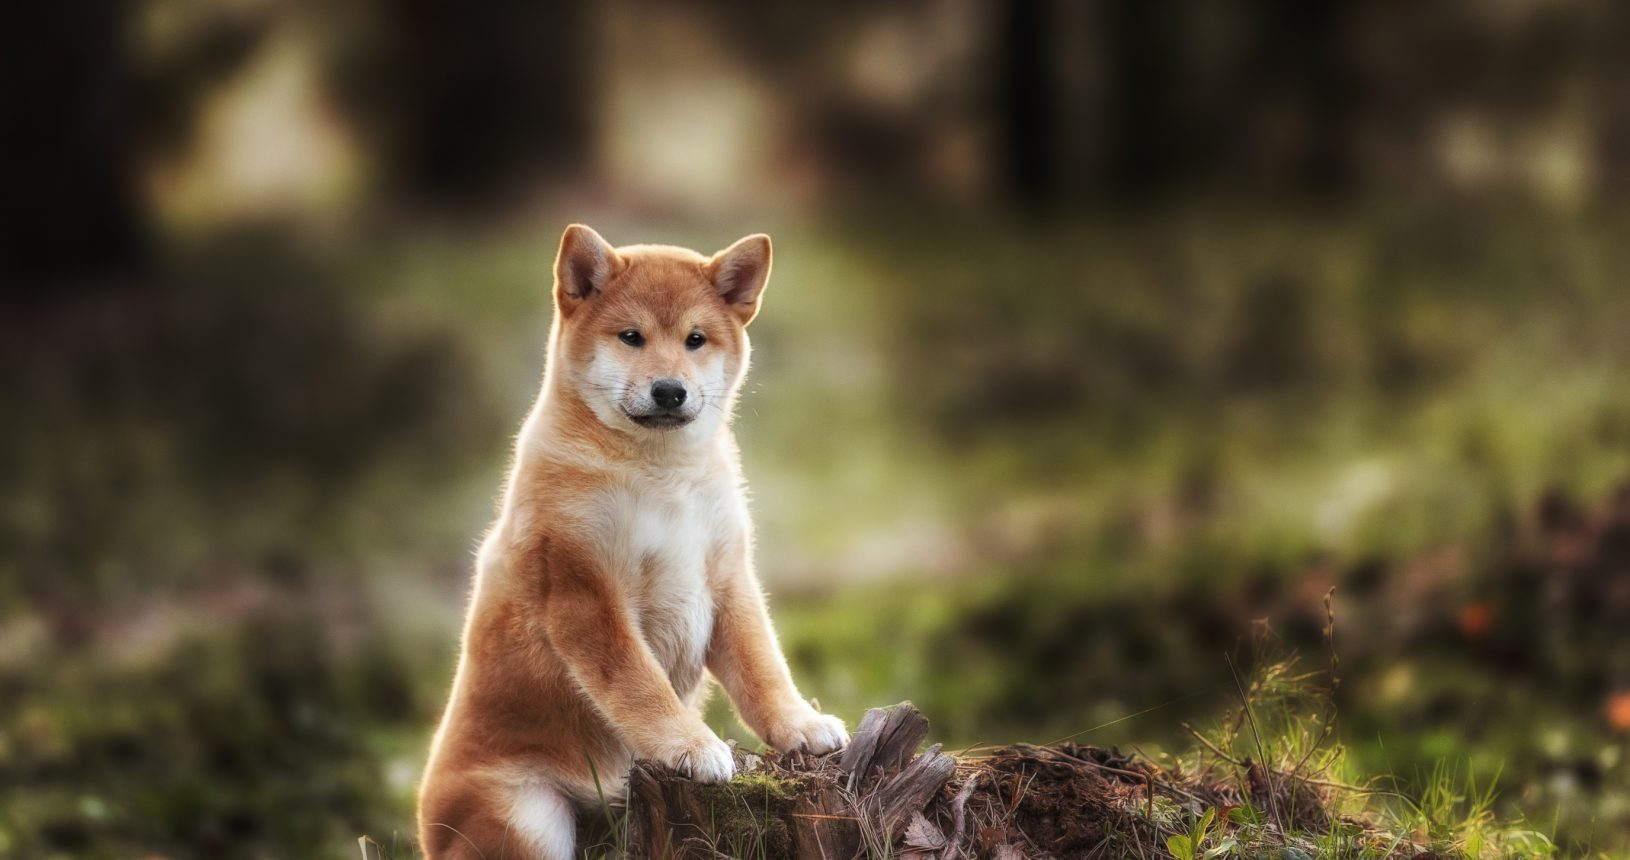 Shiba Inu Puppies For Sale Singapore Puppies Sale In Singapore Petshop